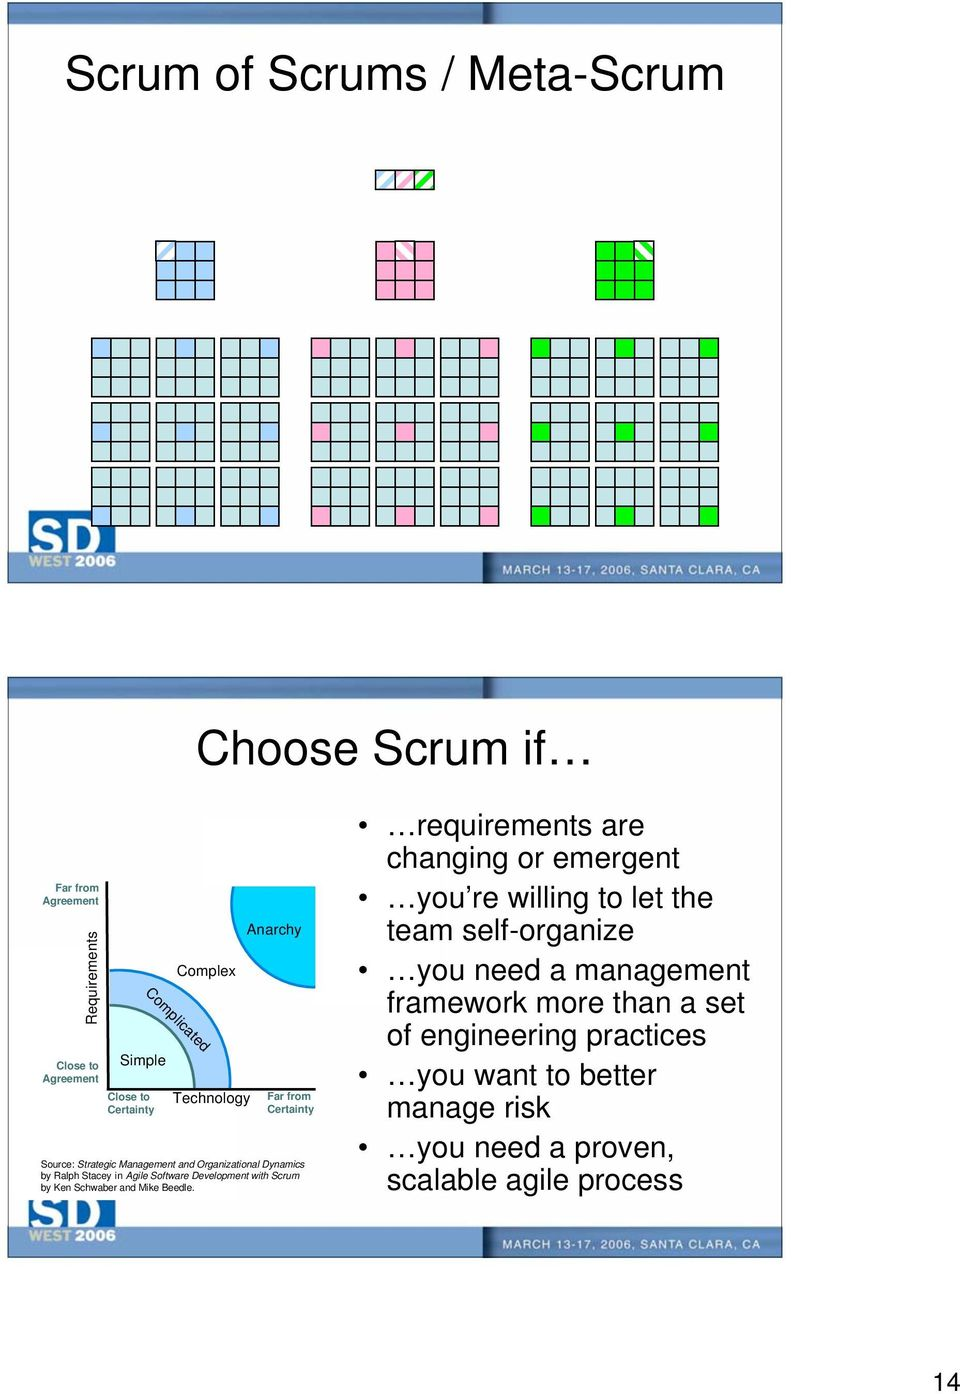 Development with Scrum by Ken Schwaber and Mike Beedle.